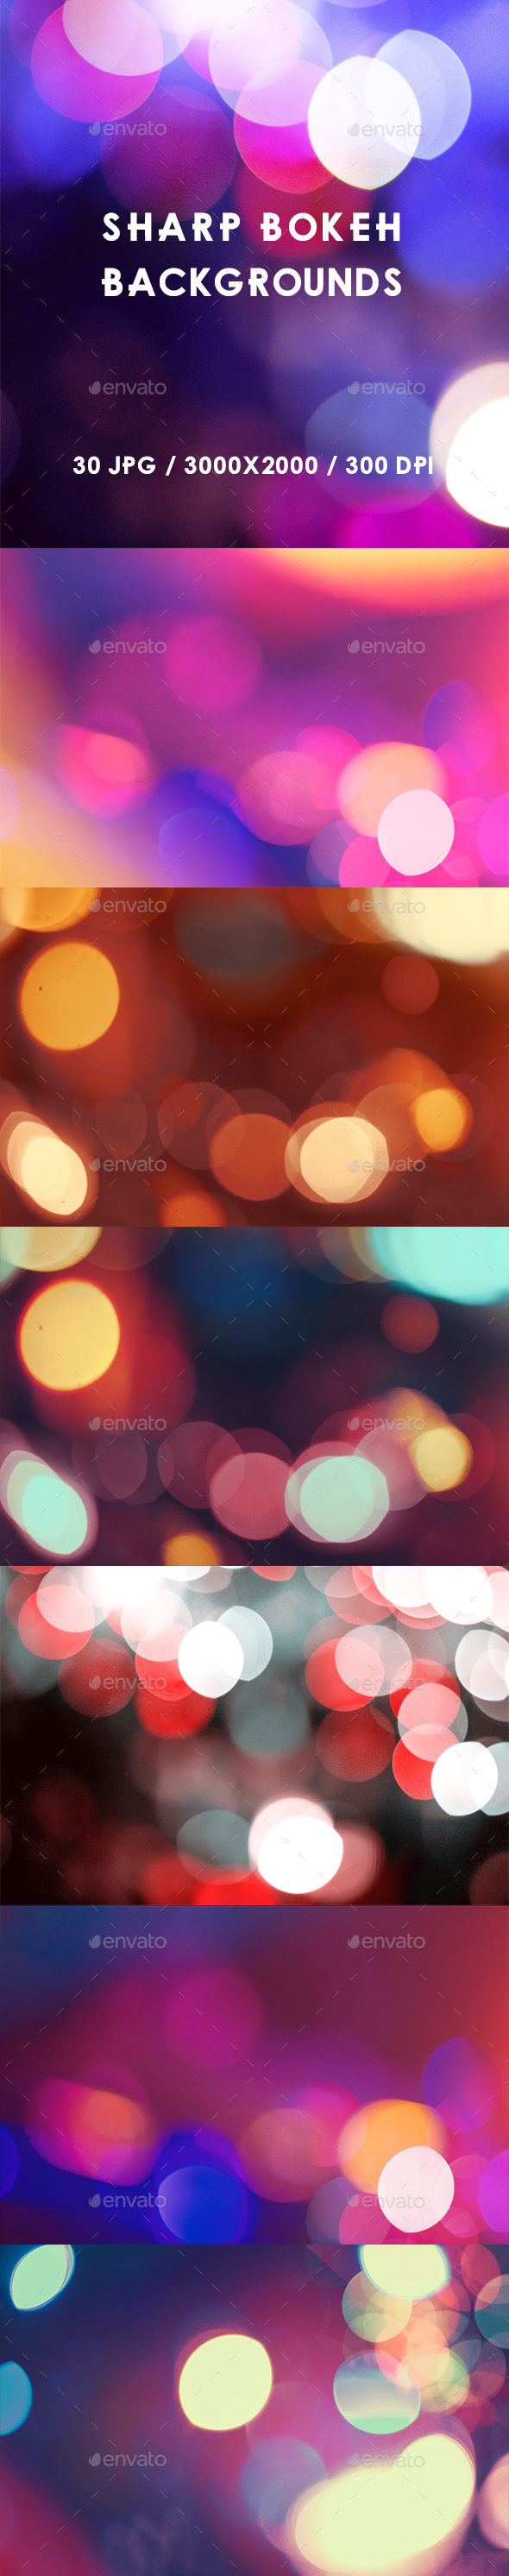 50 Sharp Bokeh Backgrounds - Abstract Backgrounds